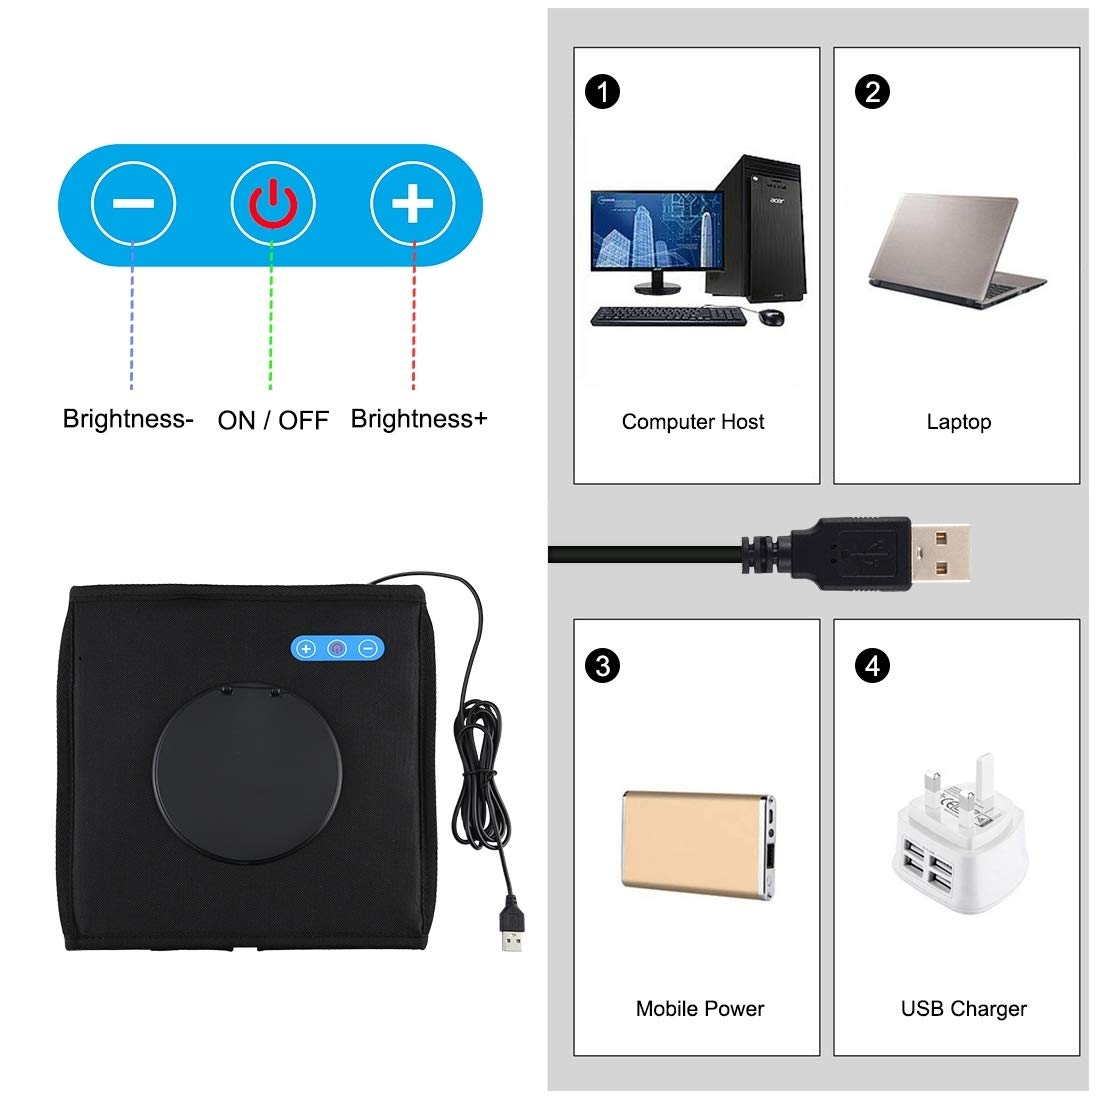 PULUZ Mini Photo Studio Light Box, Photo Shooting Tent kit, Portable Folding Photography Light Tent kit with CRI >95 96pcs LED Light + 6 Kinds Double- Sided Color Backgrounds for Small Size Products